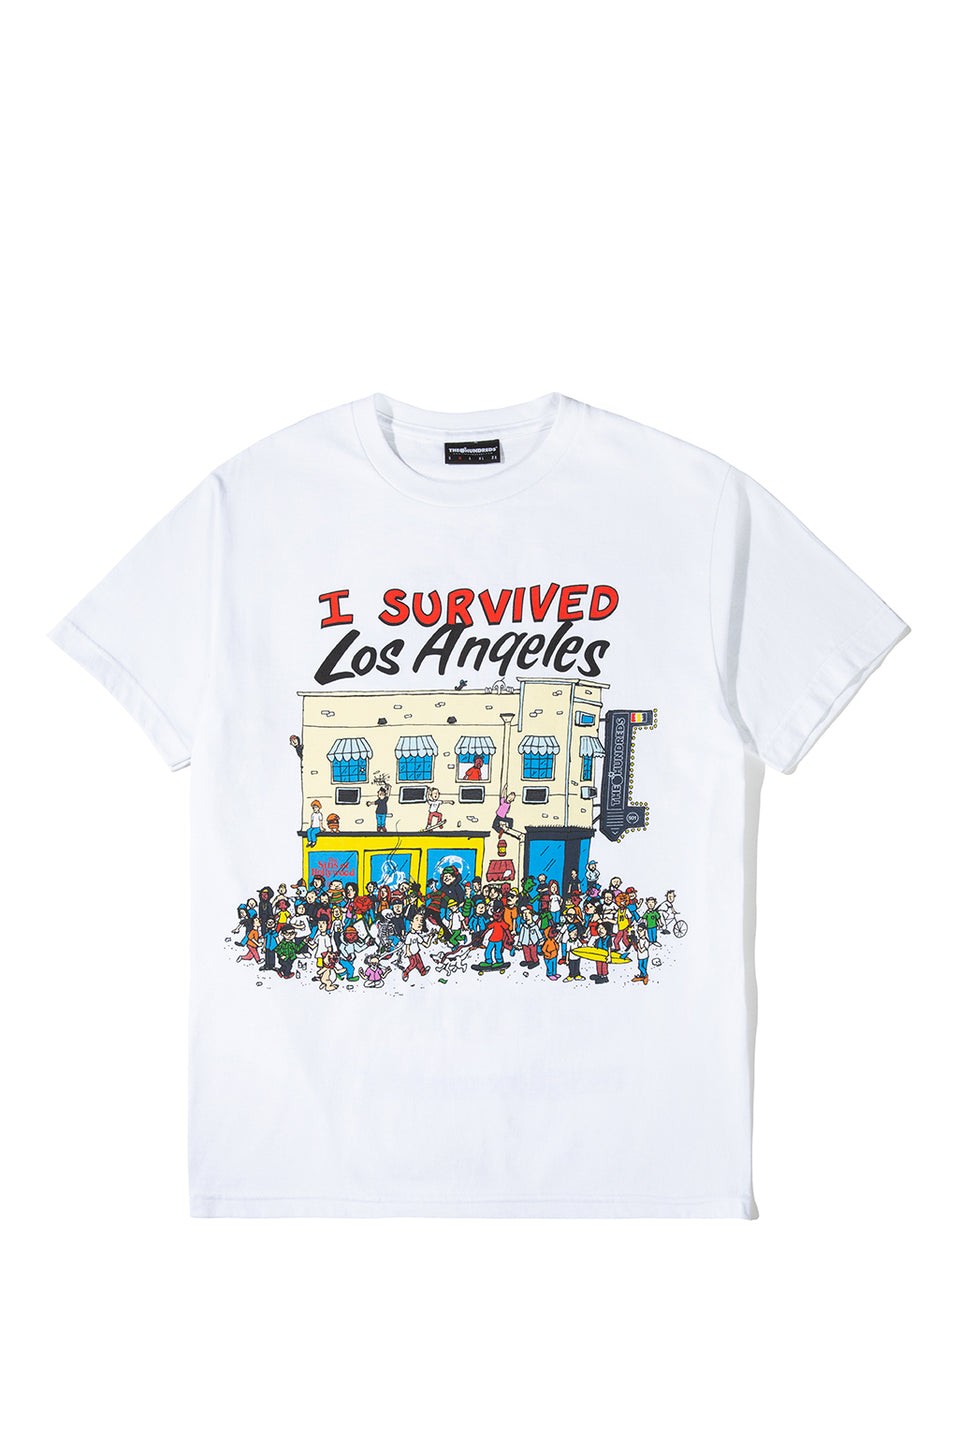 730a6967 I Survived T-Shirt ...